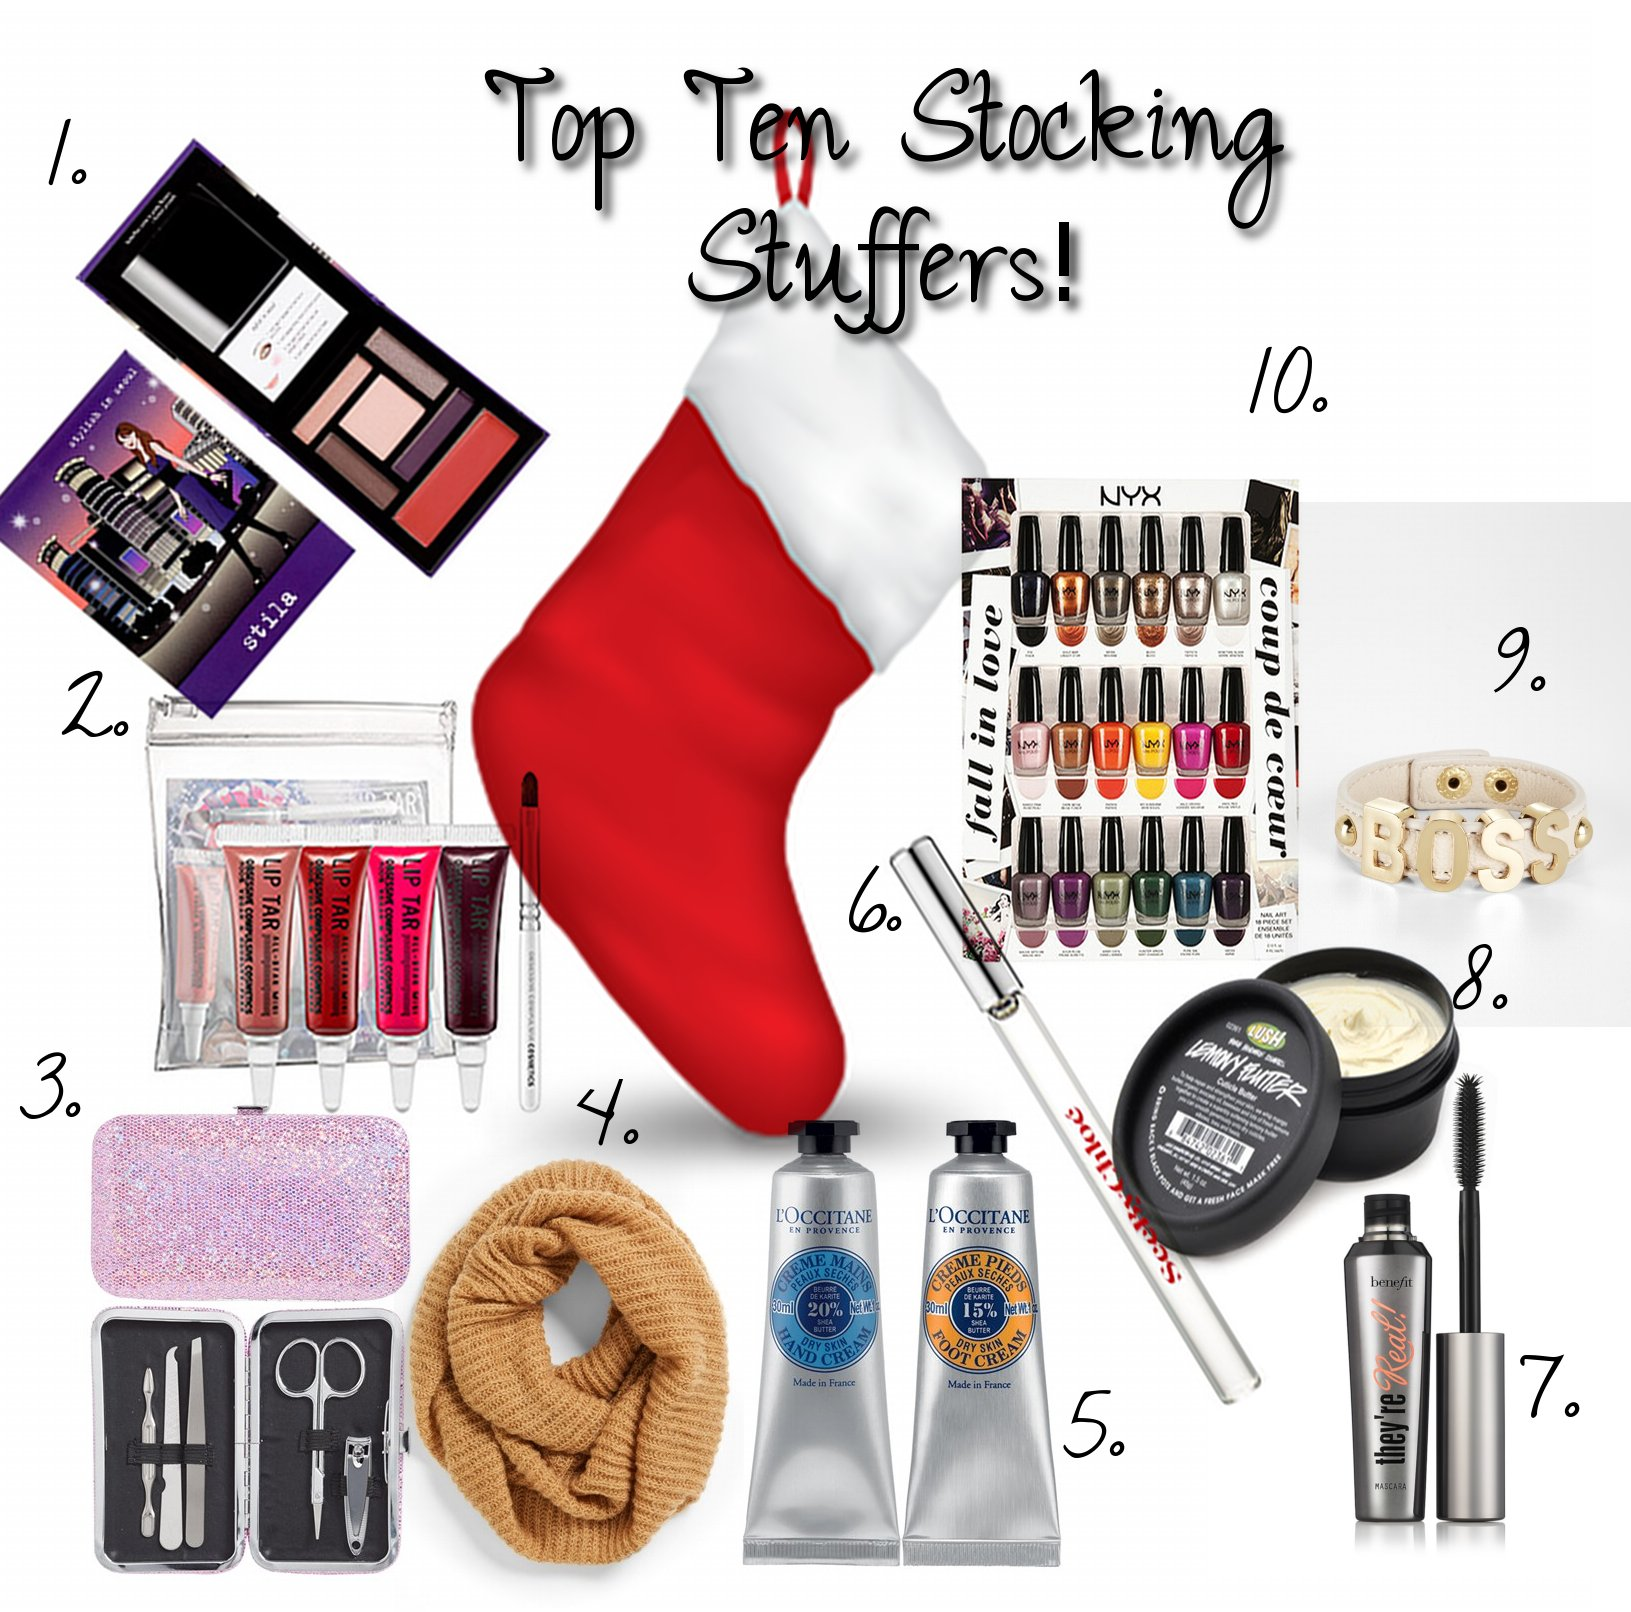 Top Ten Stocking Stuffers